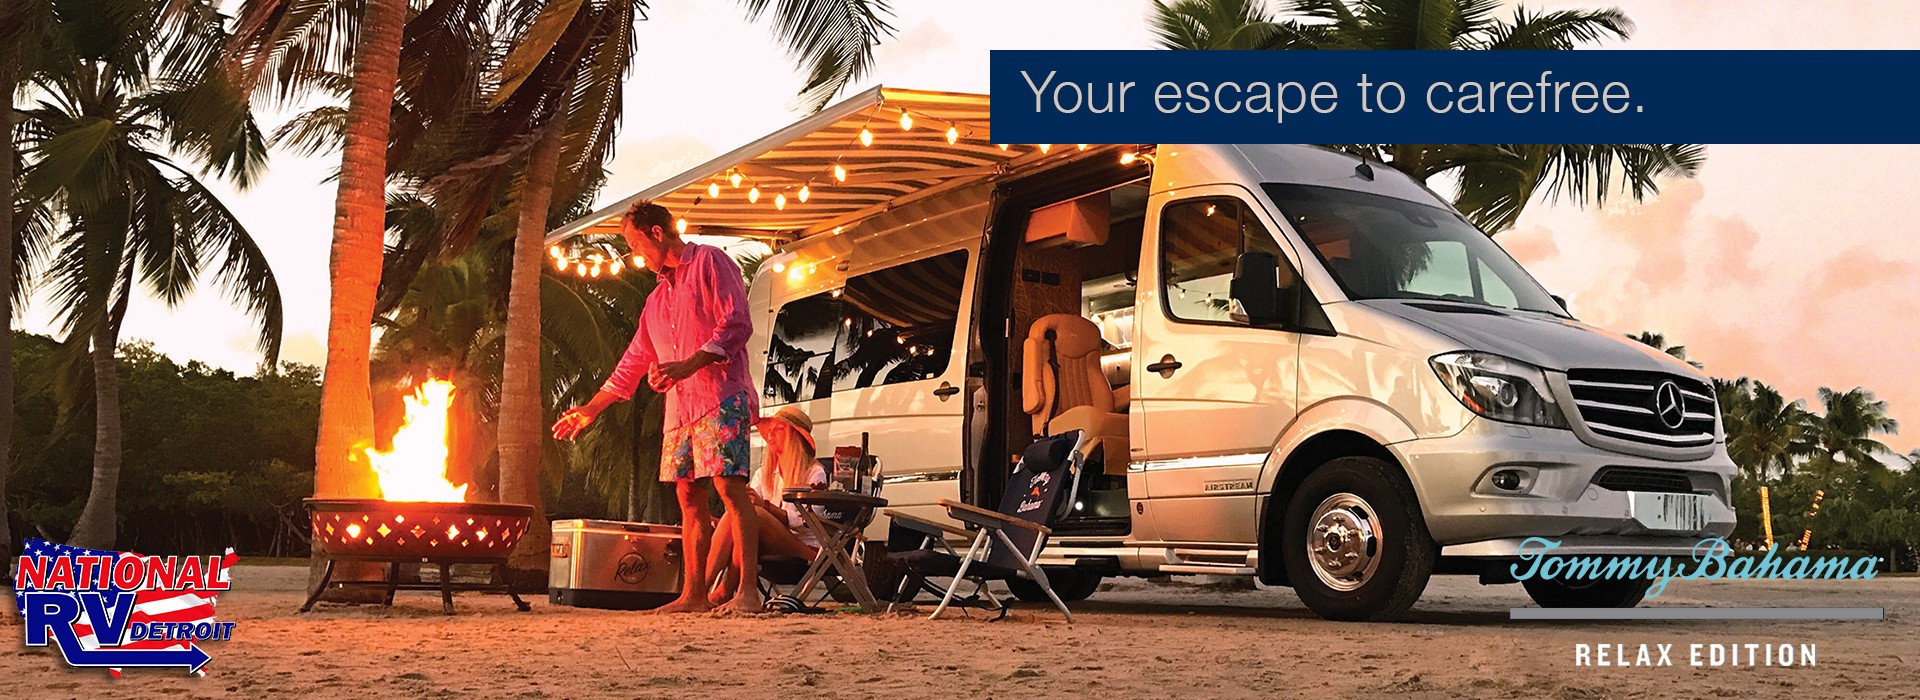 Airstream Tommy Bahama RV available at NationalRV - Your escape to carefree.